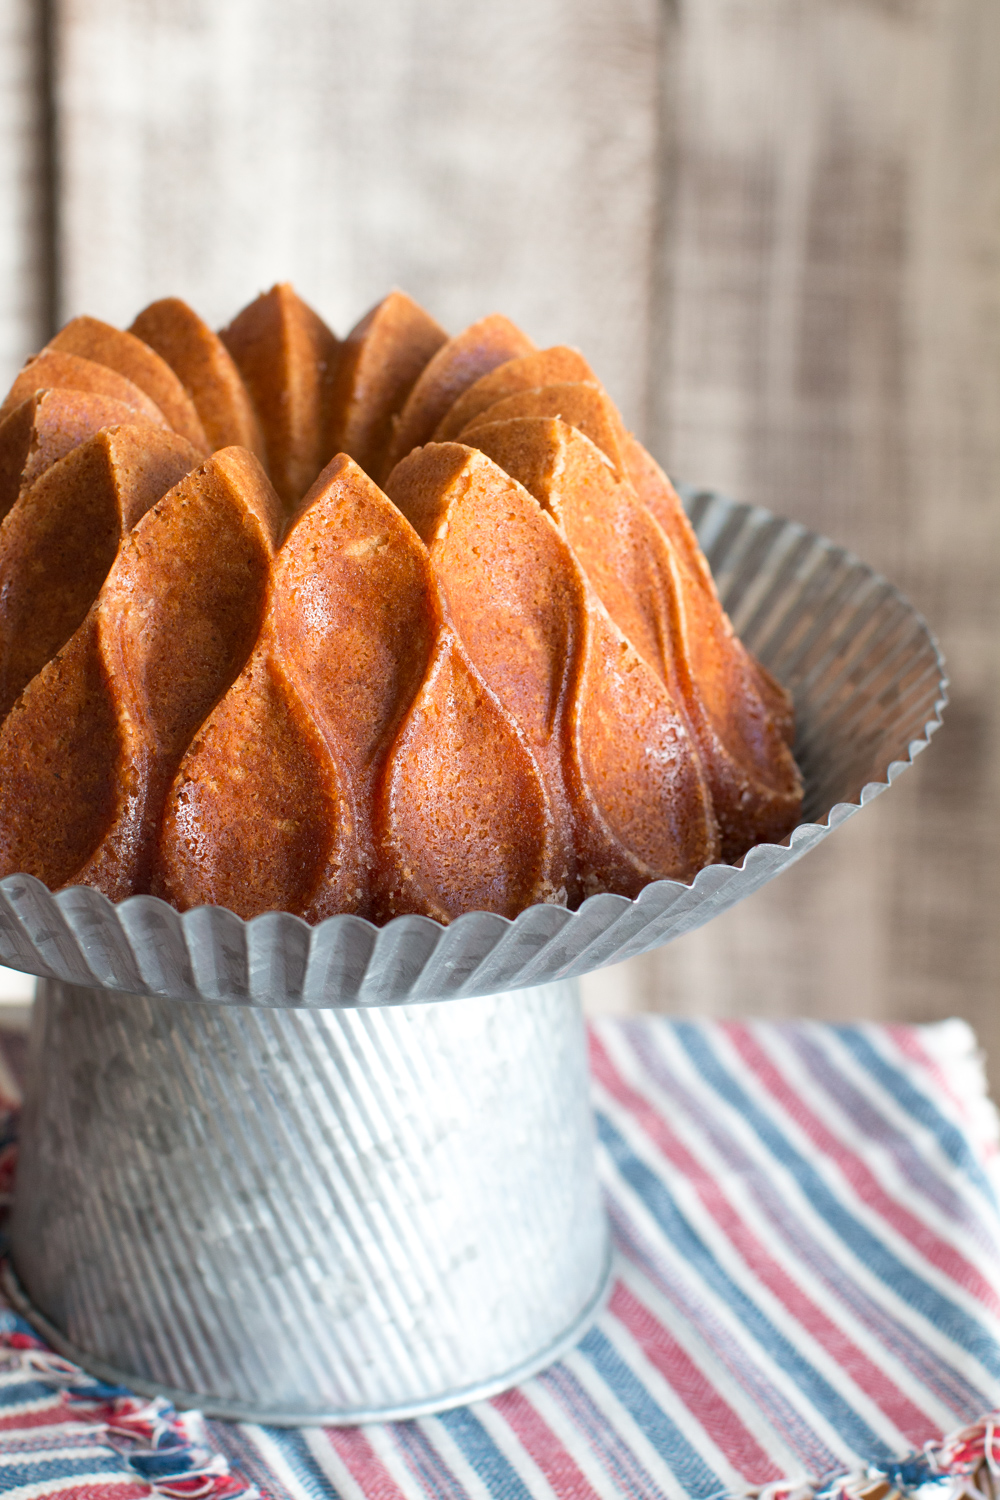 God bless America, that is one beautiful bundt!